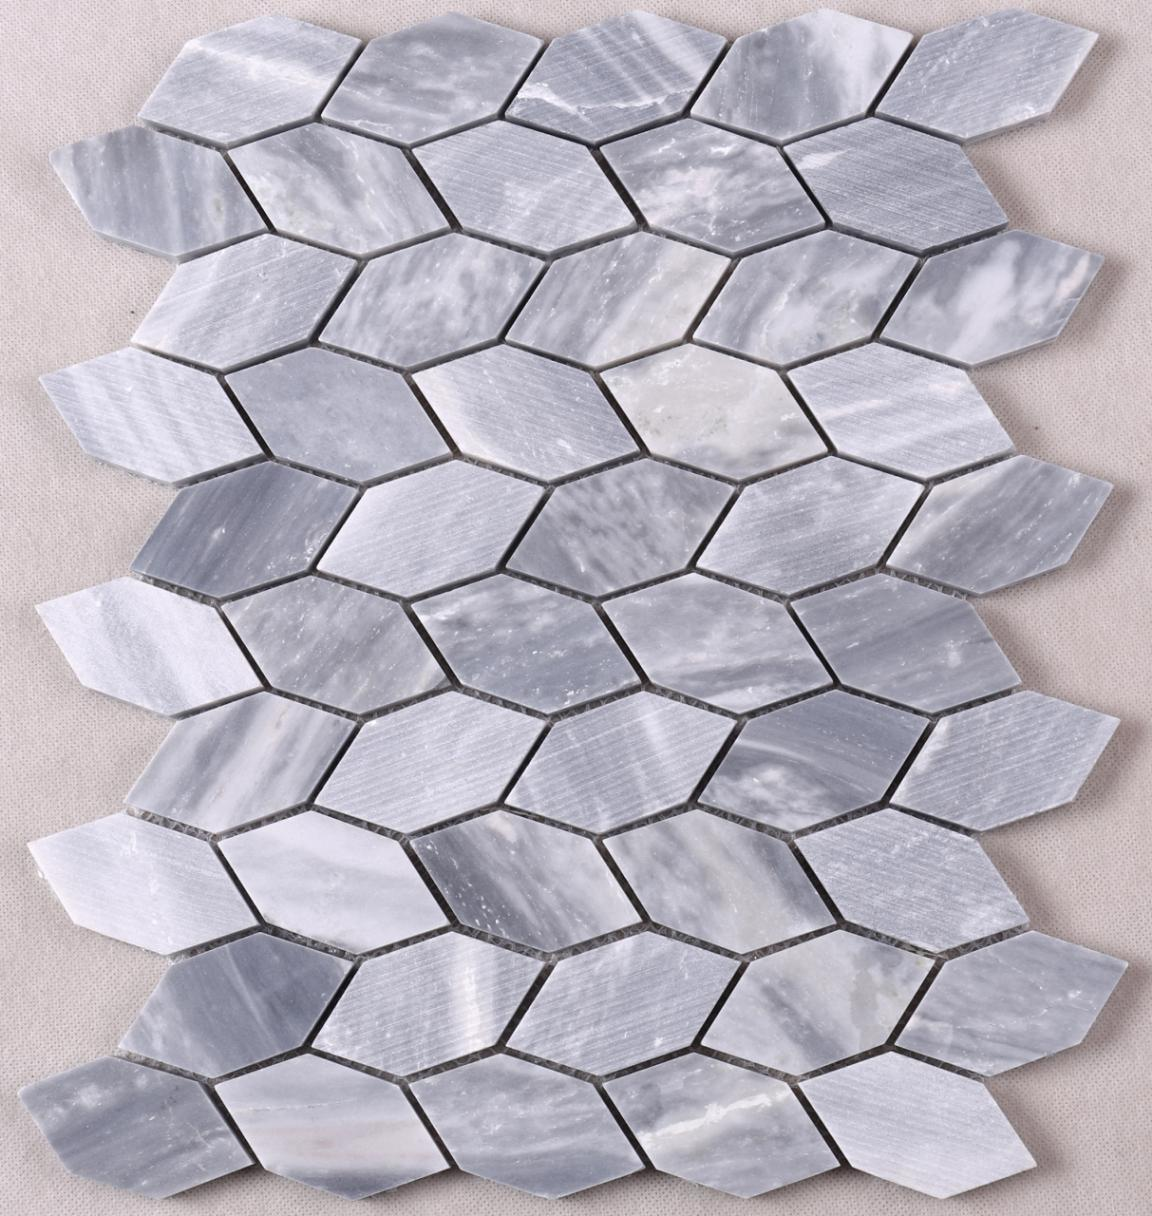 Heng Xing tile stone wall tiles inquire now for living room-1